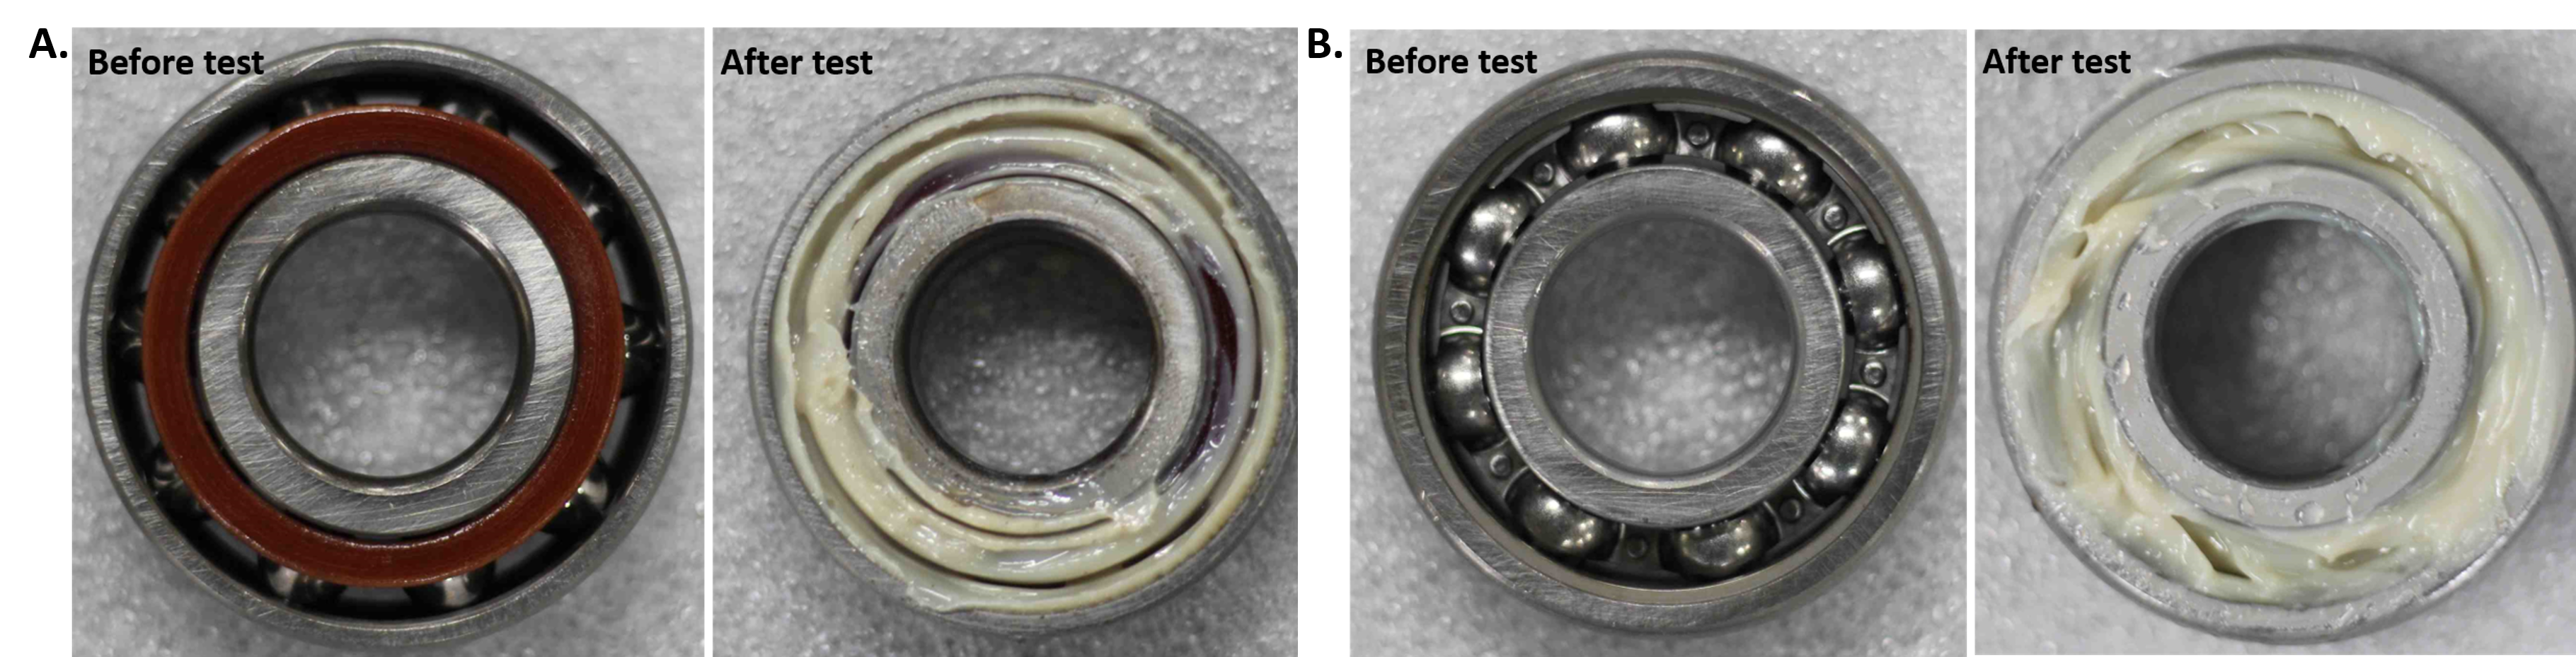 Bearings according to IP 186 and ASTM D1478